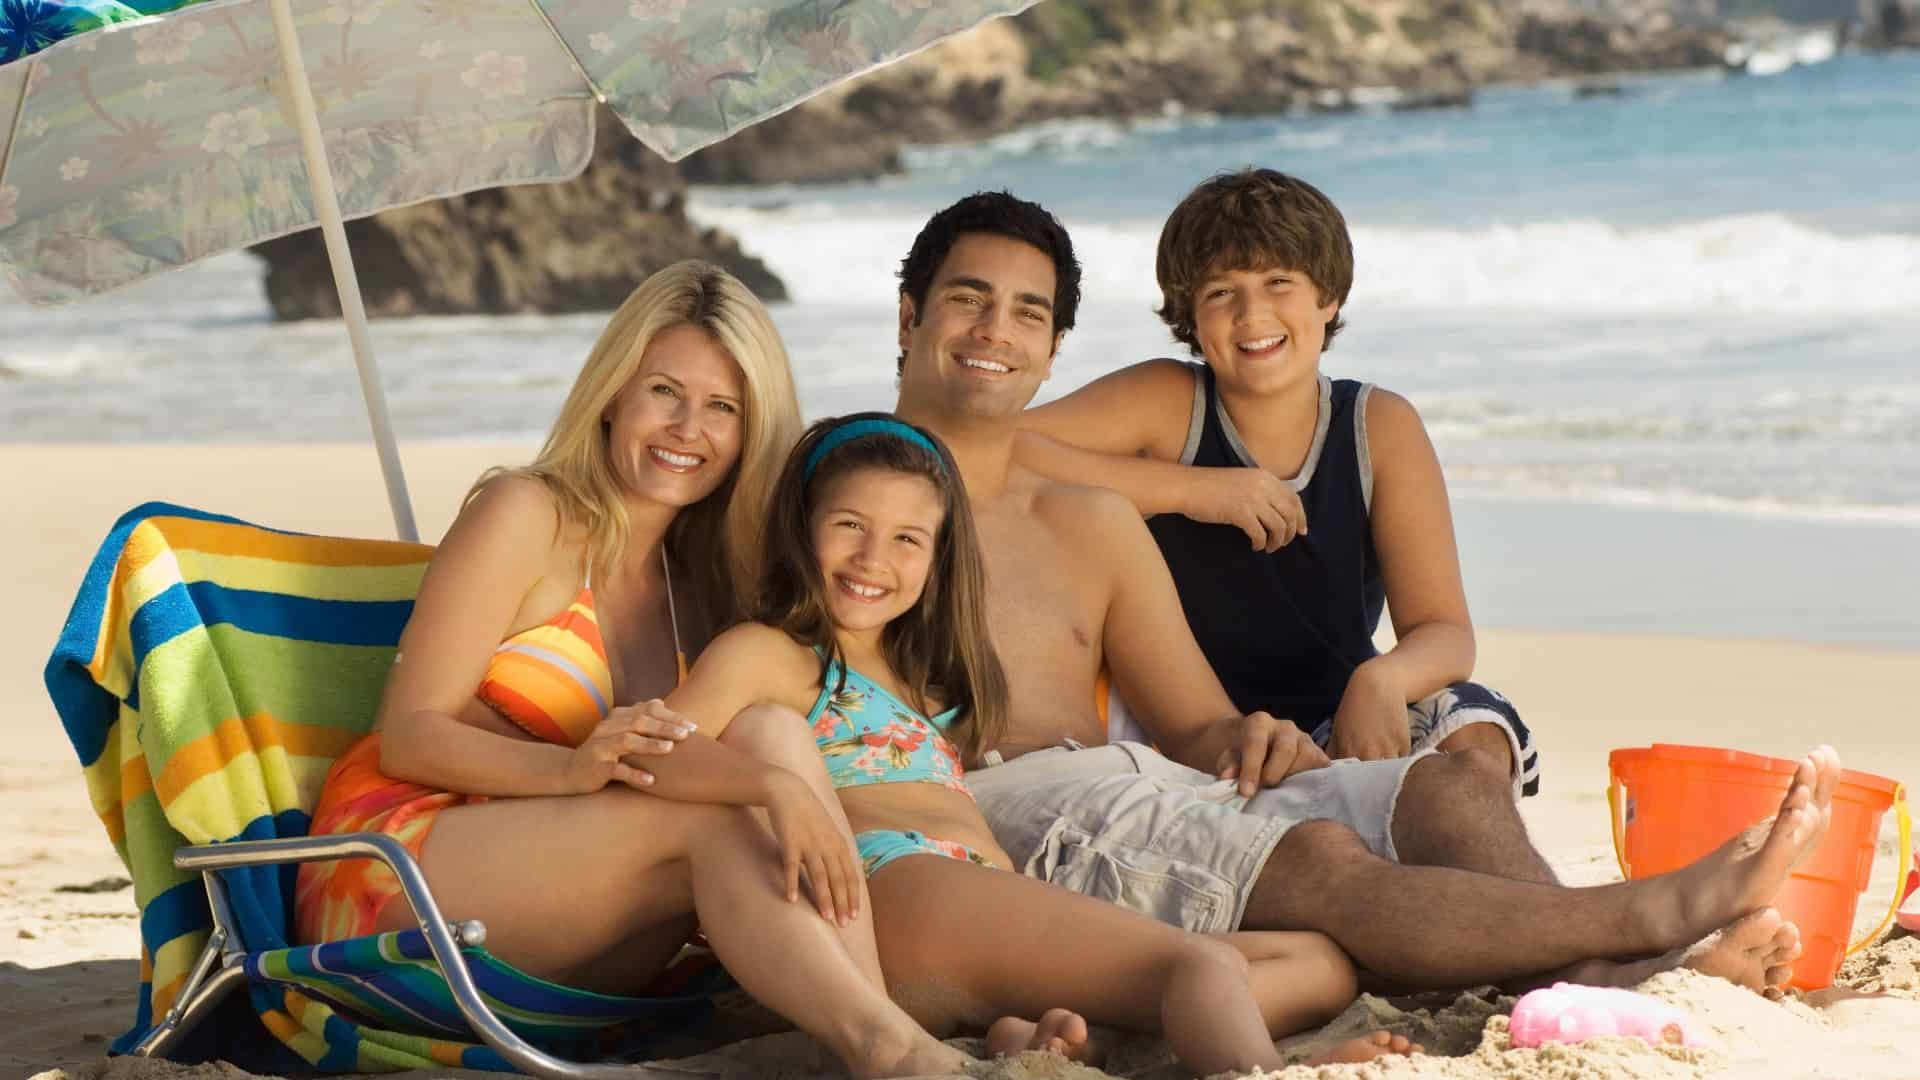 A happy family enjoys the beach